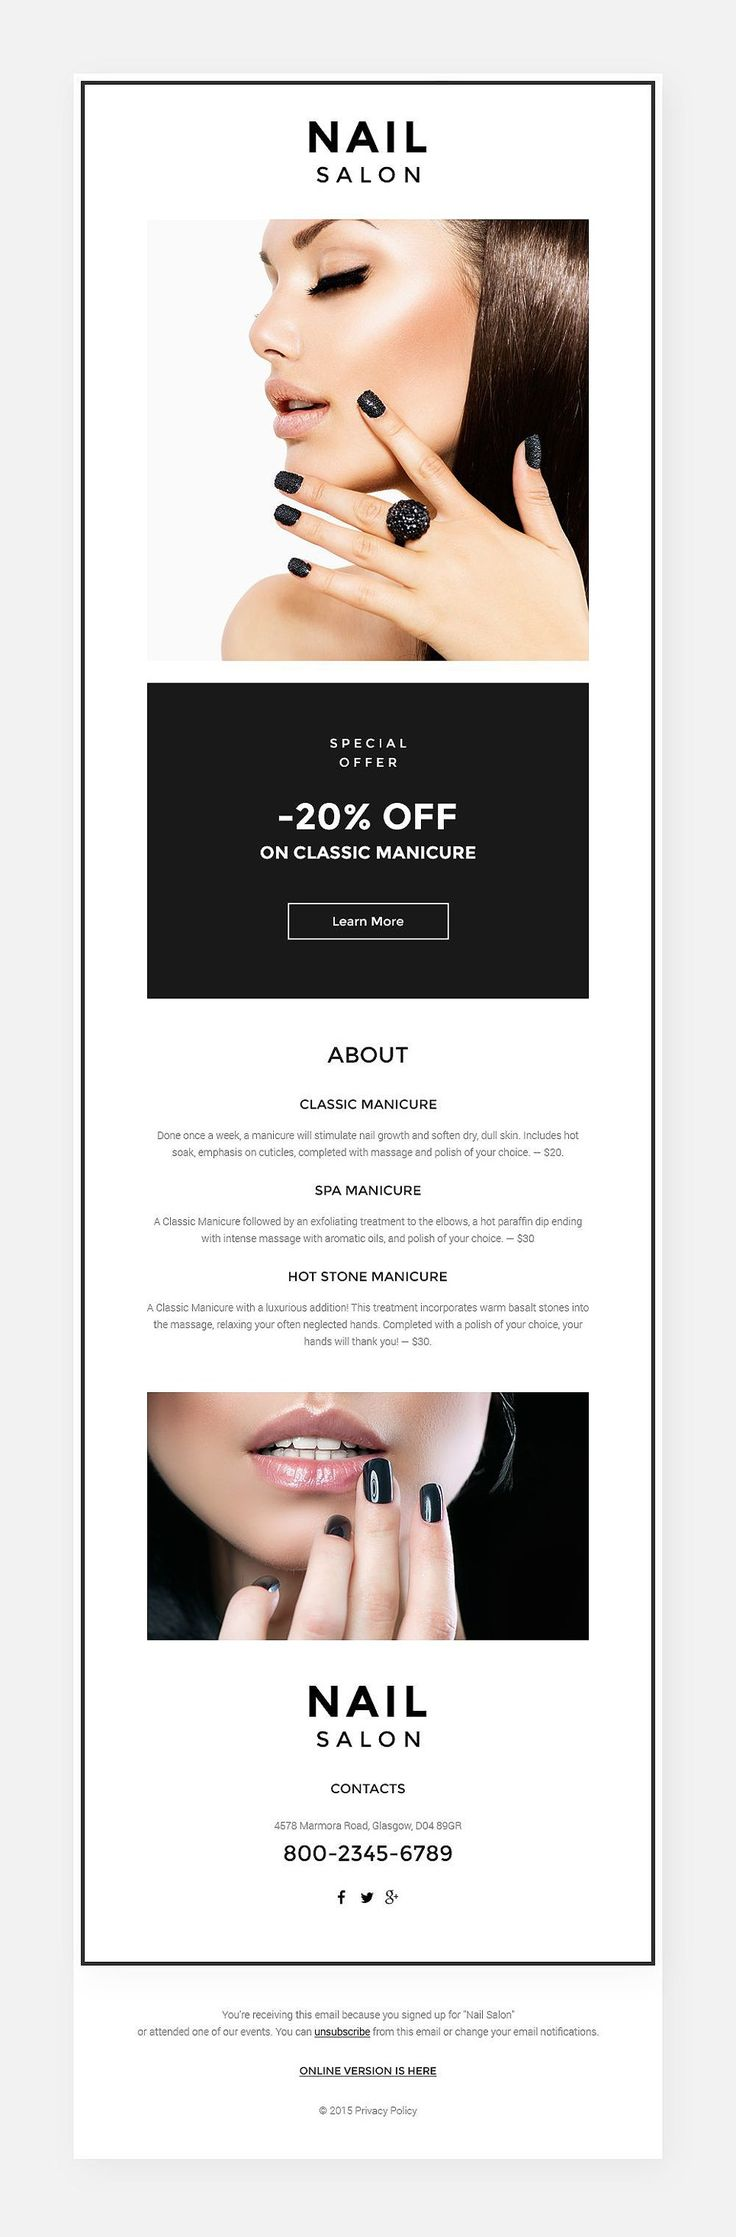 Beautiful 010 Editor Templates Huge 1300 Resume Government Samples Selection Criteria Regular 18th Birthday Invitation Templates 1st Job Resume Template Youthful 2014 Printable Calendar Template Green24 Hour Timeline Template 25  Best Ideas About Mailchimp Newsletter Templates On Pinterest ..